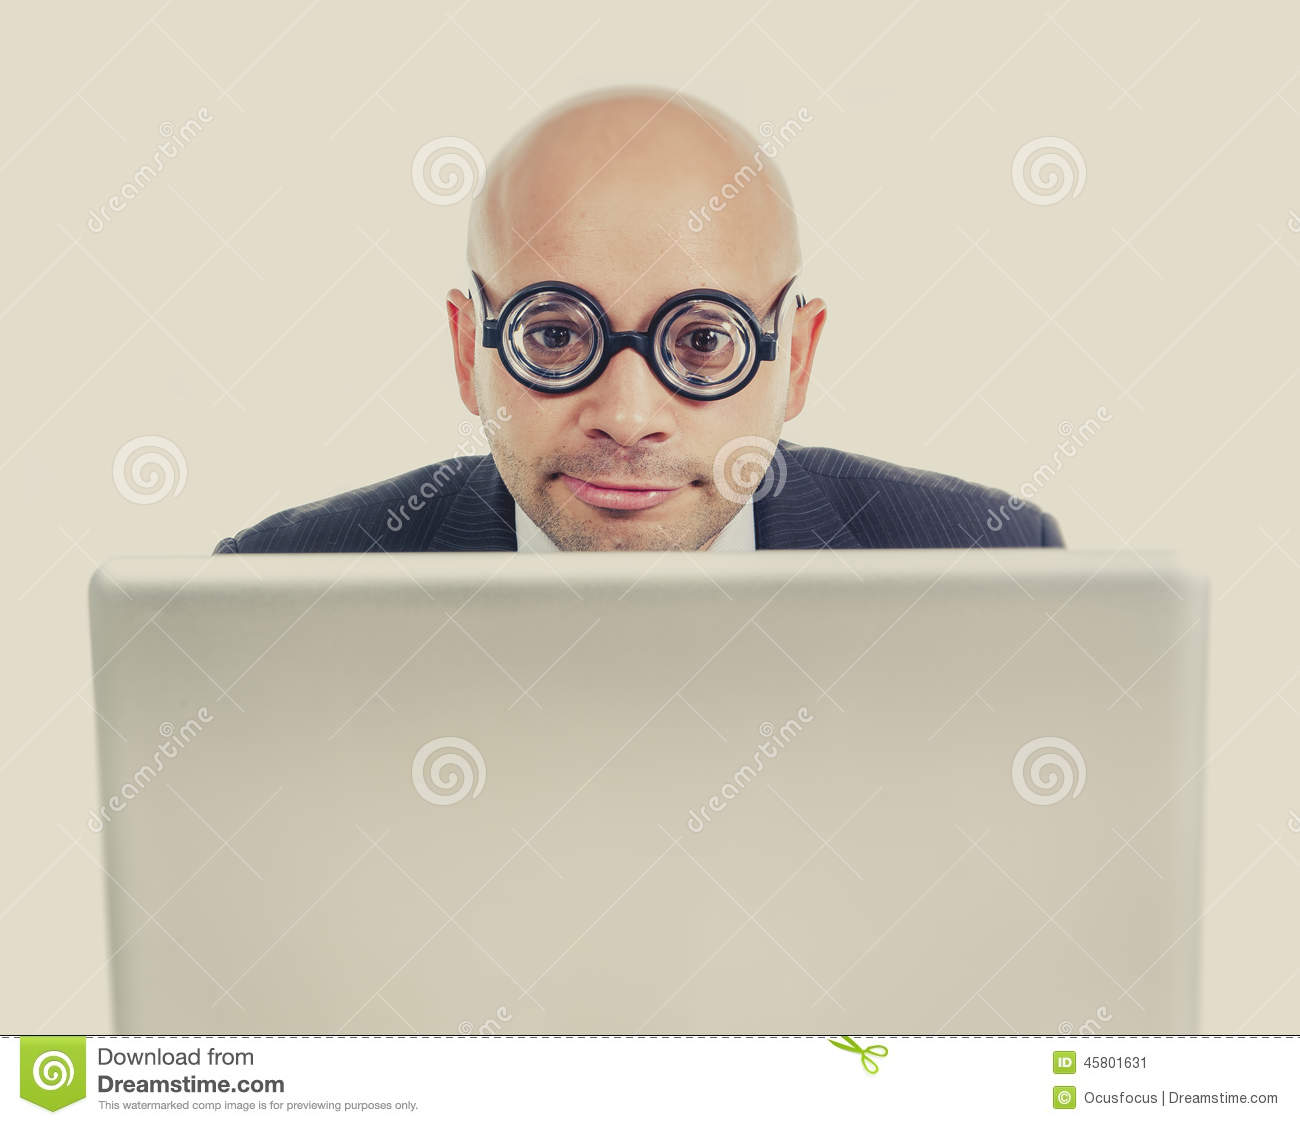 Geek and freak bald head businessman with computer laptop wearing thick glasses looking nerd